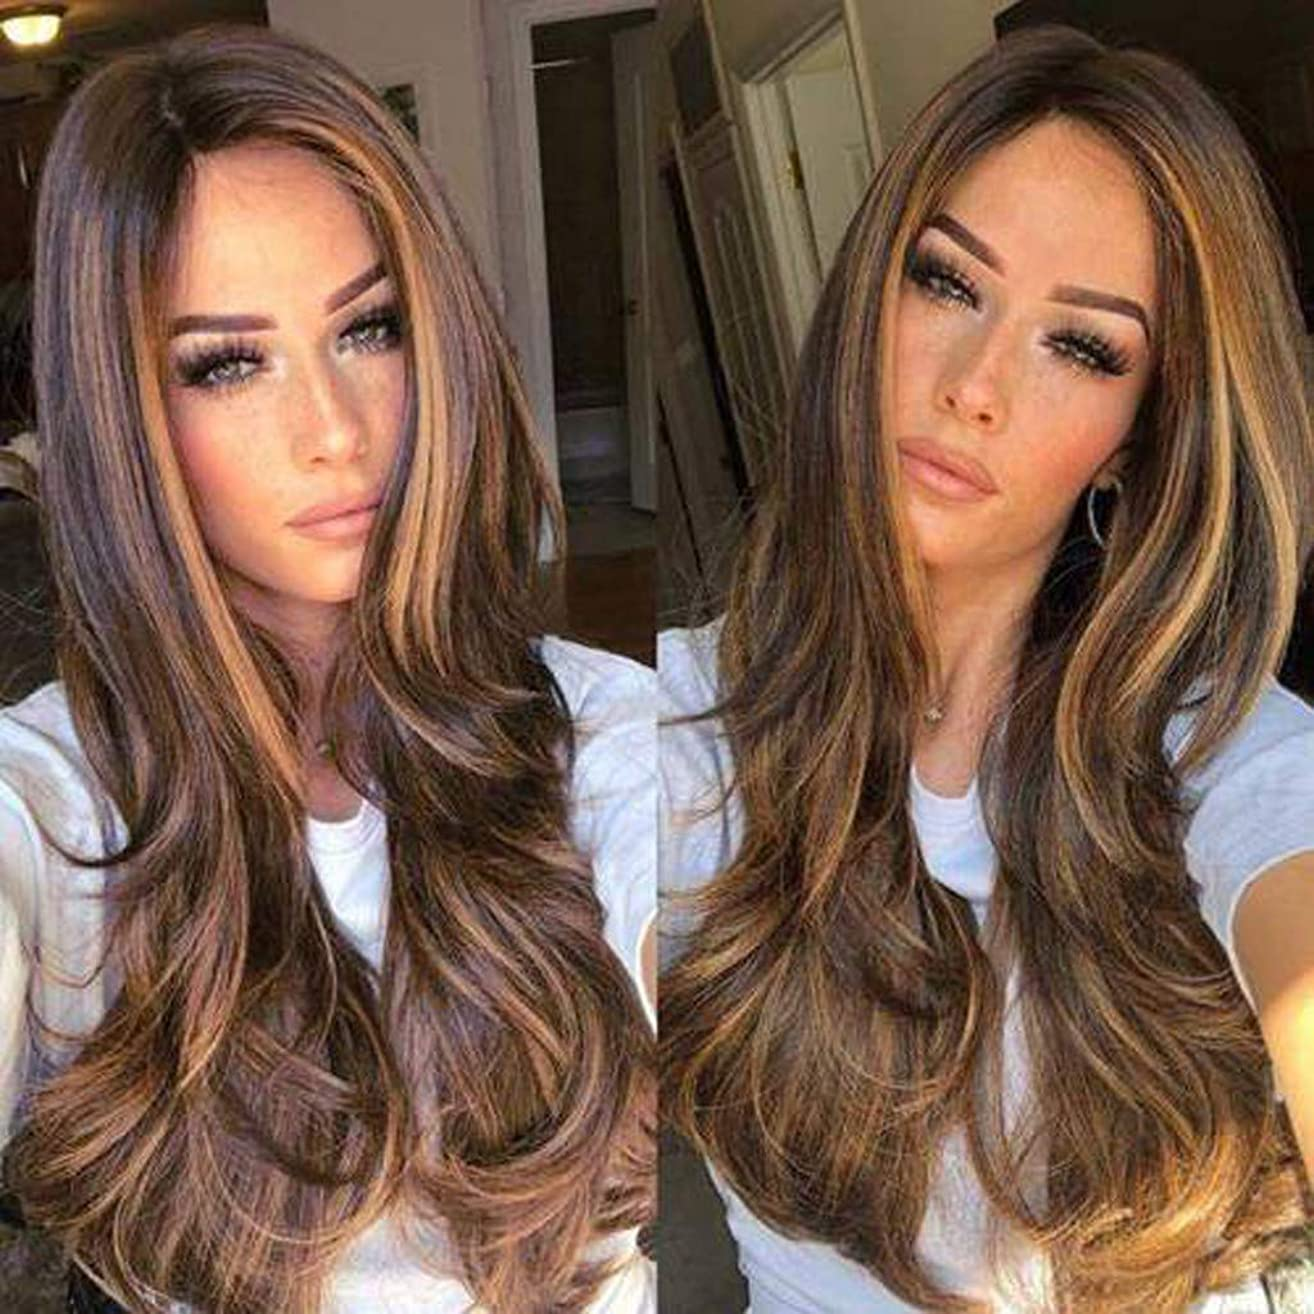 YJYDADA Synthetic Straight Long Wigs Ombre Brown Gold Blonde Linen Fashion Hair